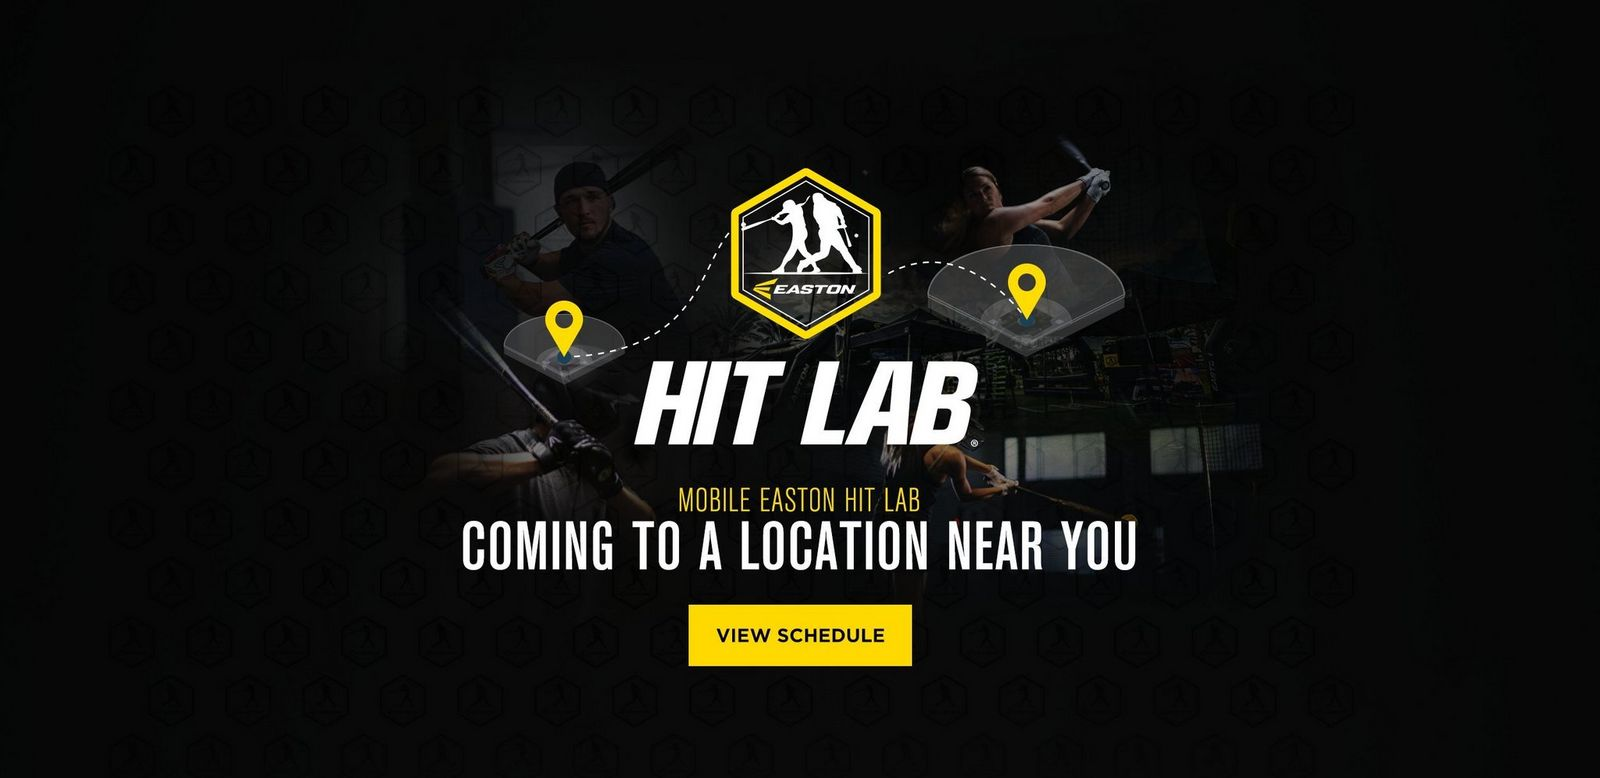 hit-lab-coming-to-location-near-you